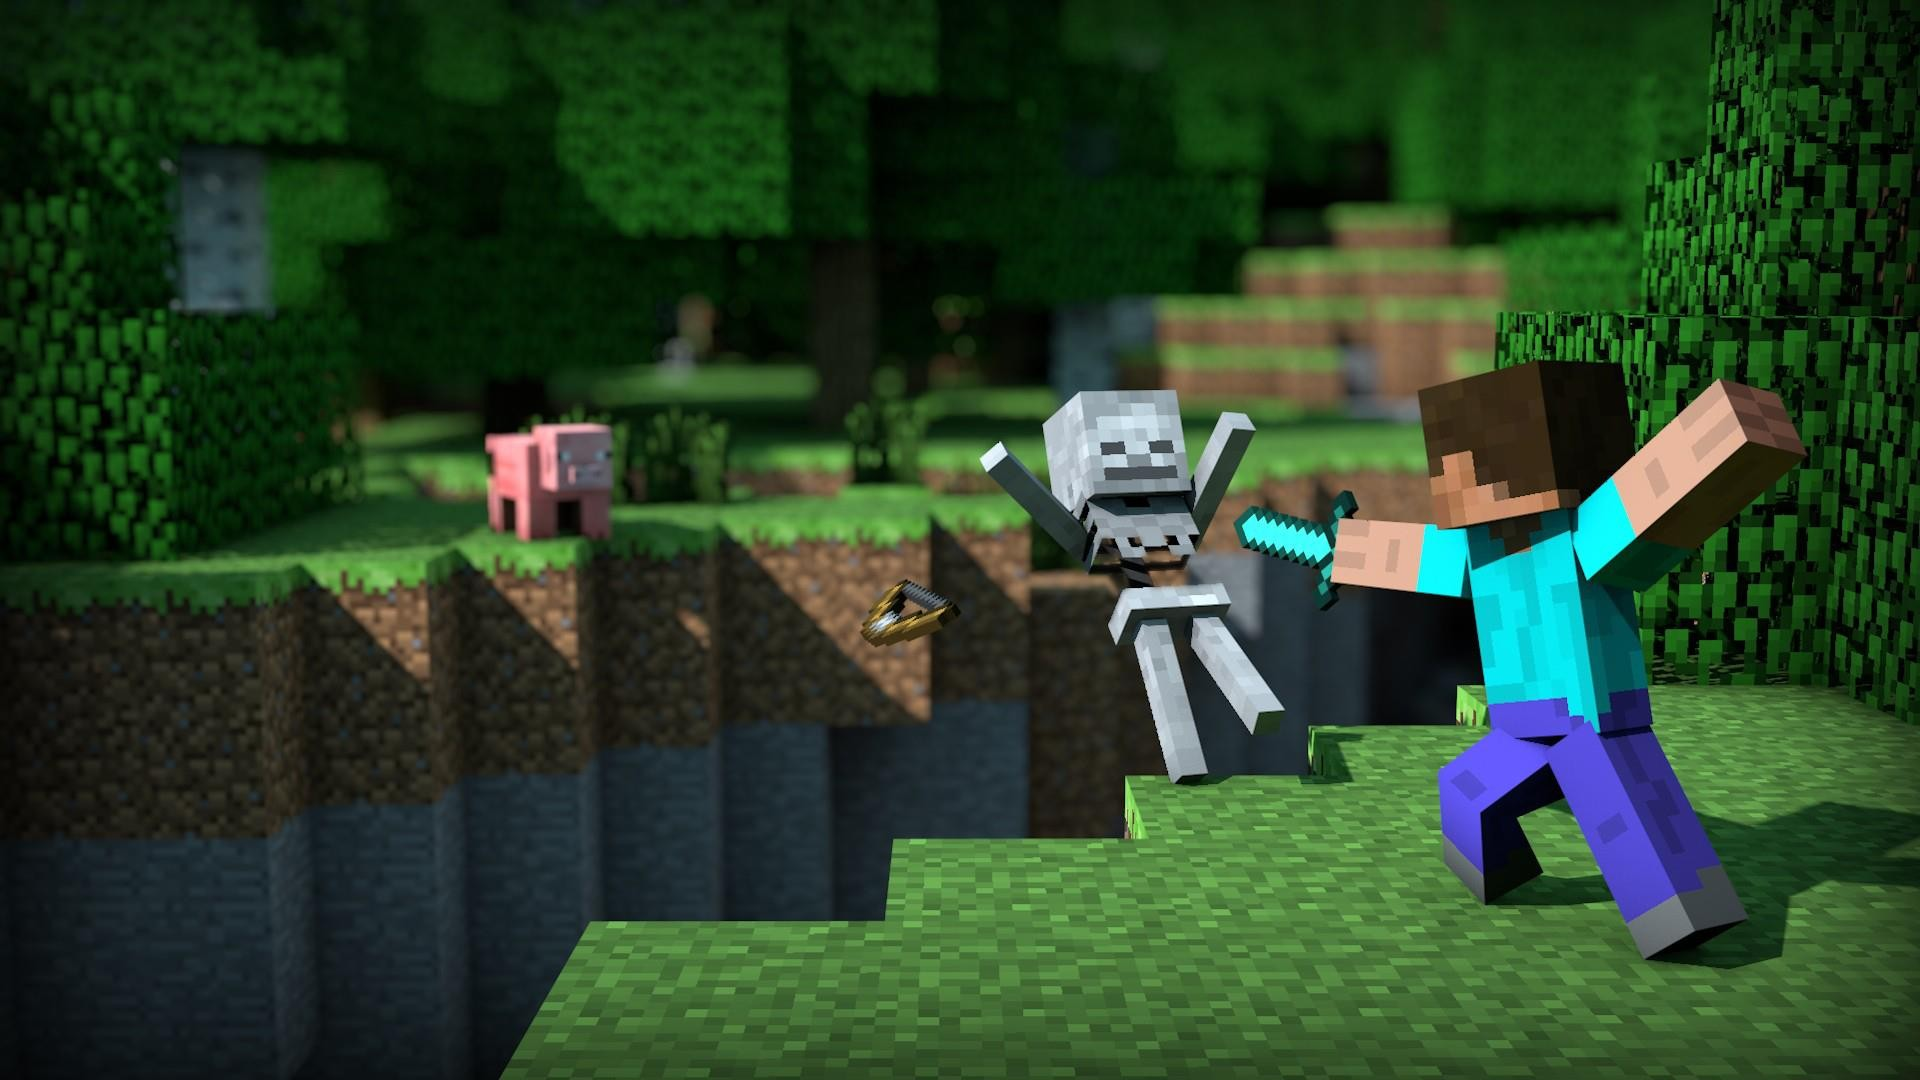 Minecraft wallpaper HD ·â' Download free awesome HD backgrounds